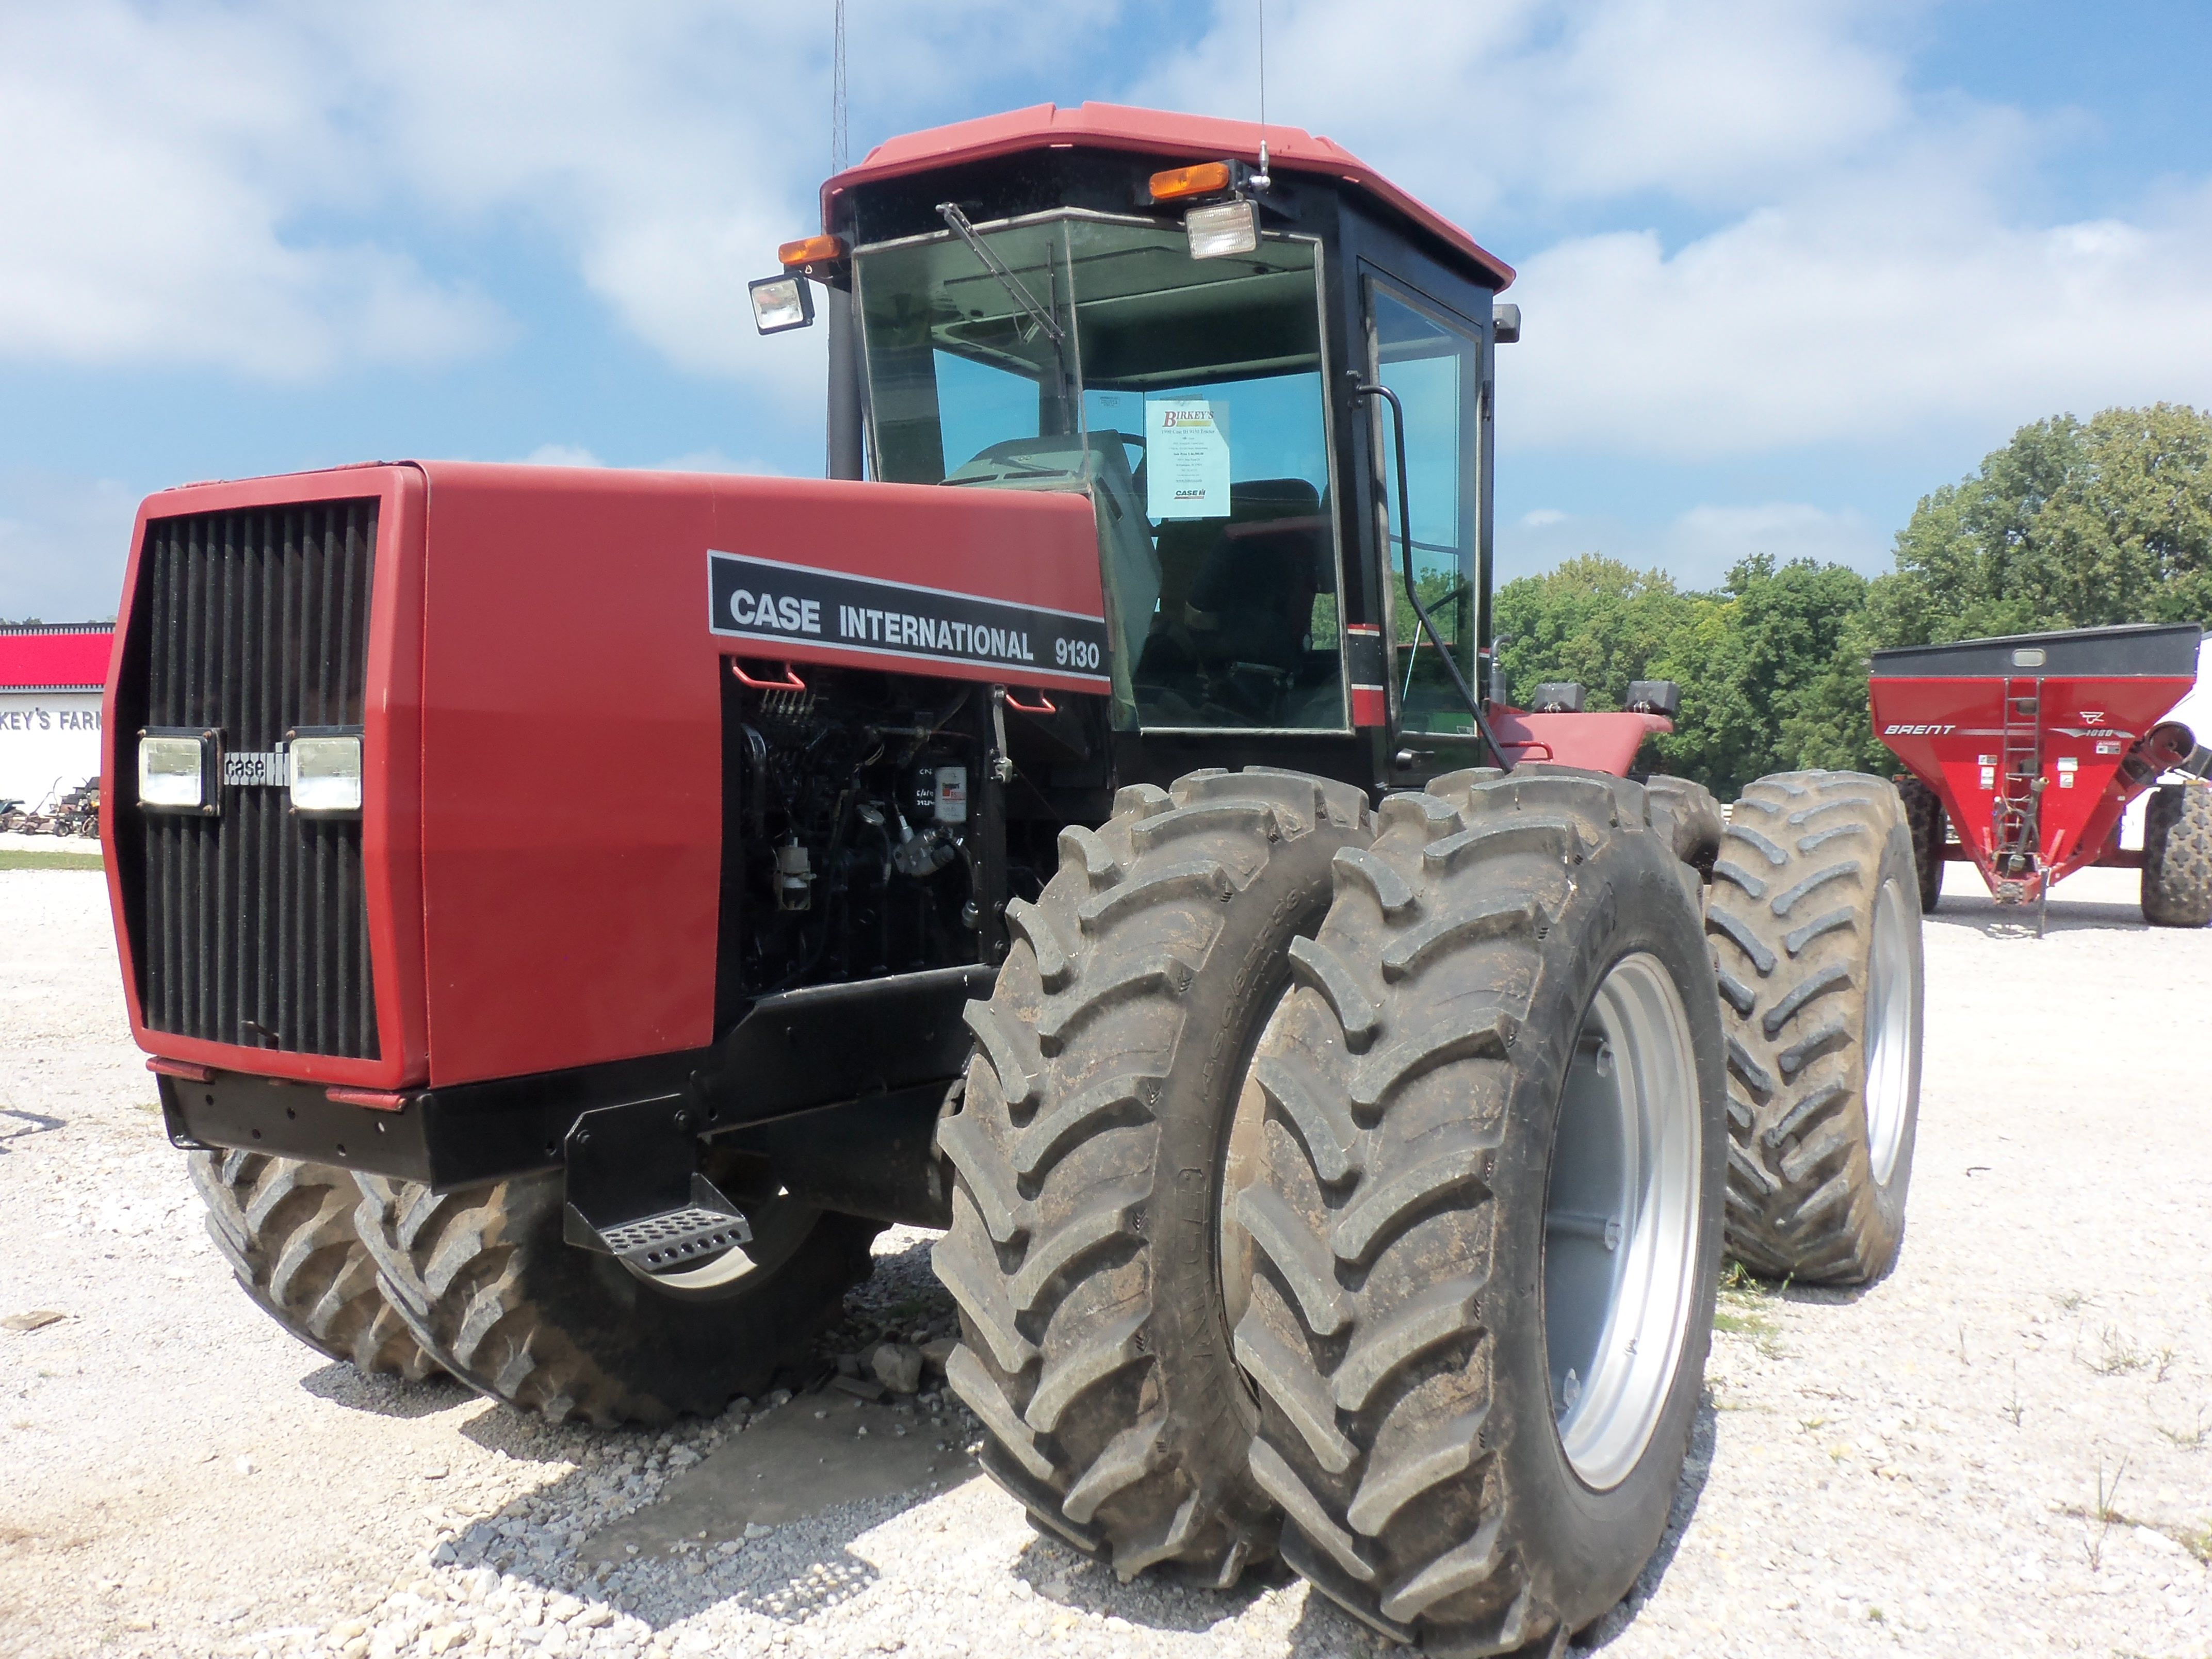 Case International 9130 4WD tractor 220 engine ,190 PTO hp, 17,750 lbs,115